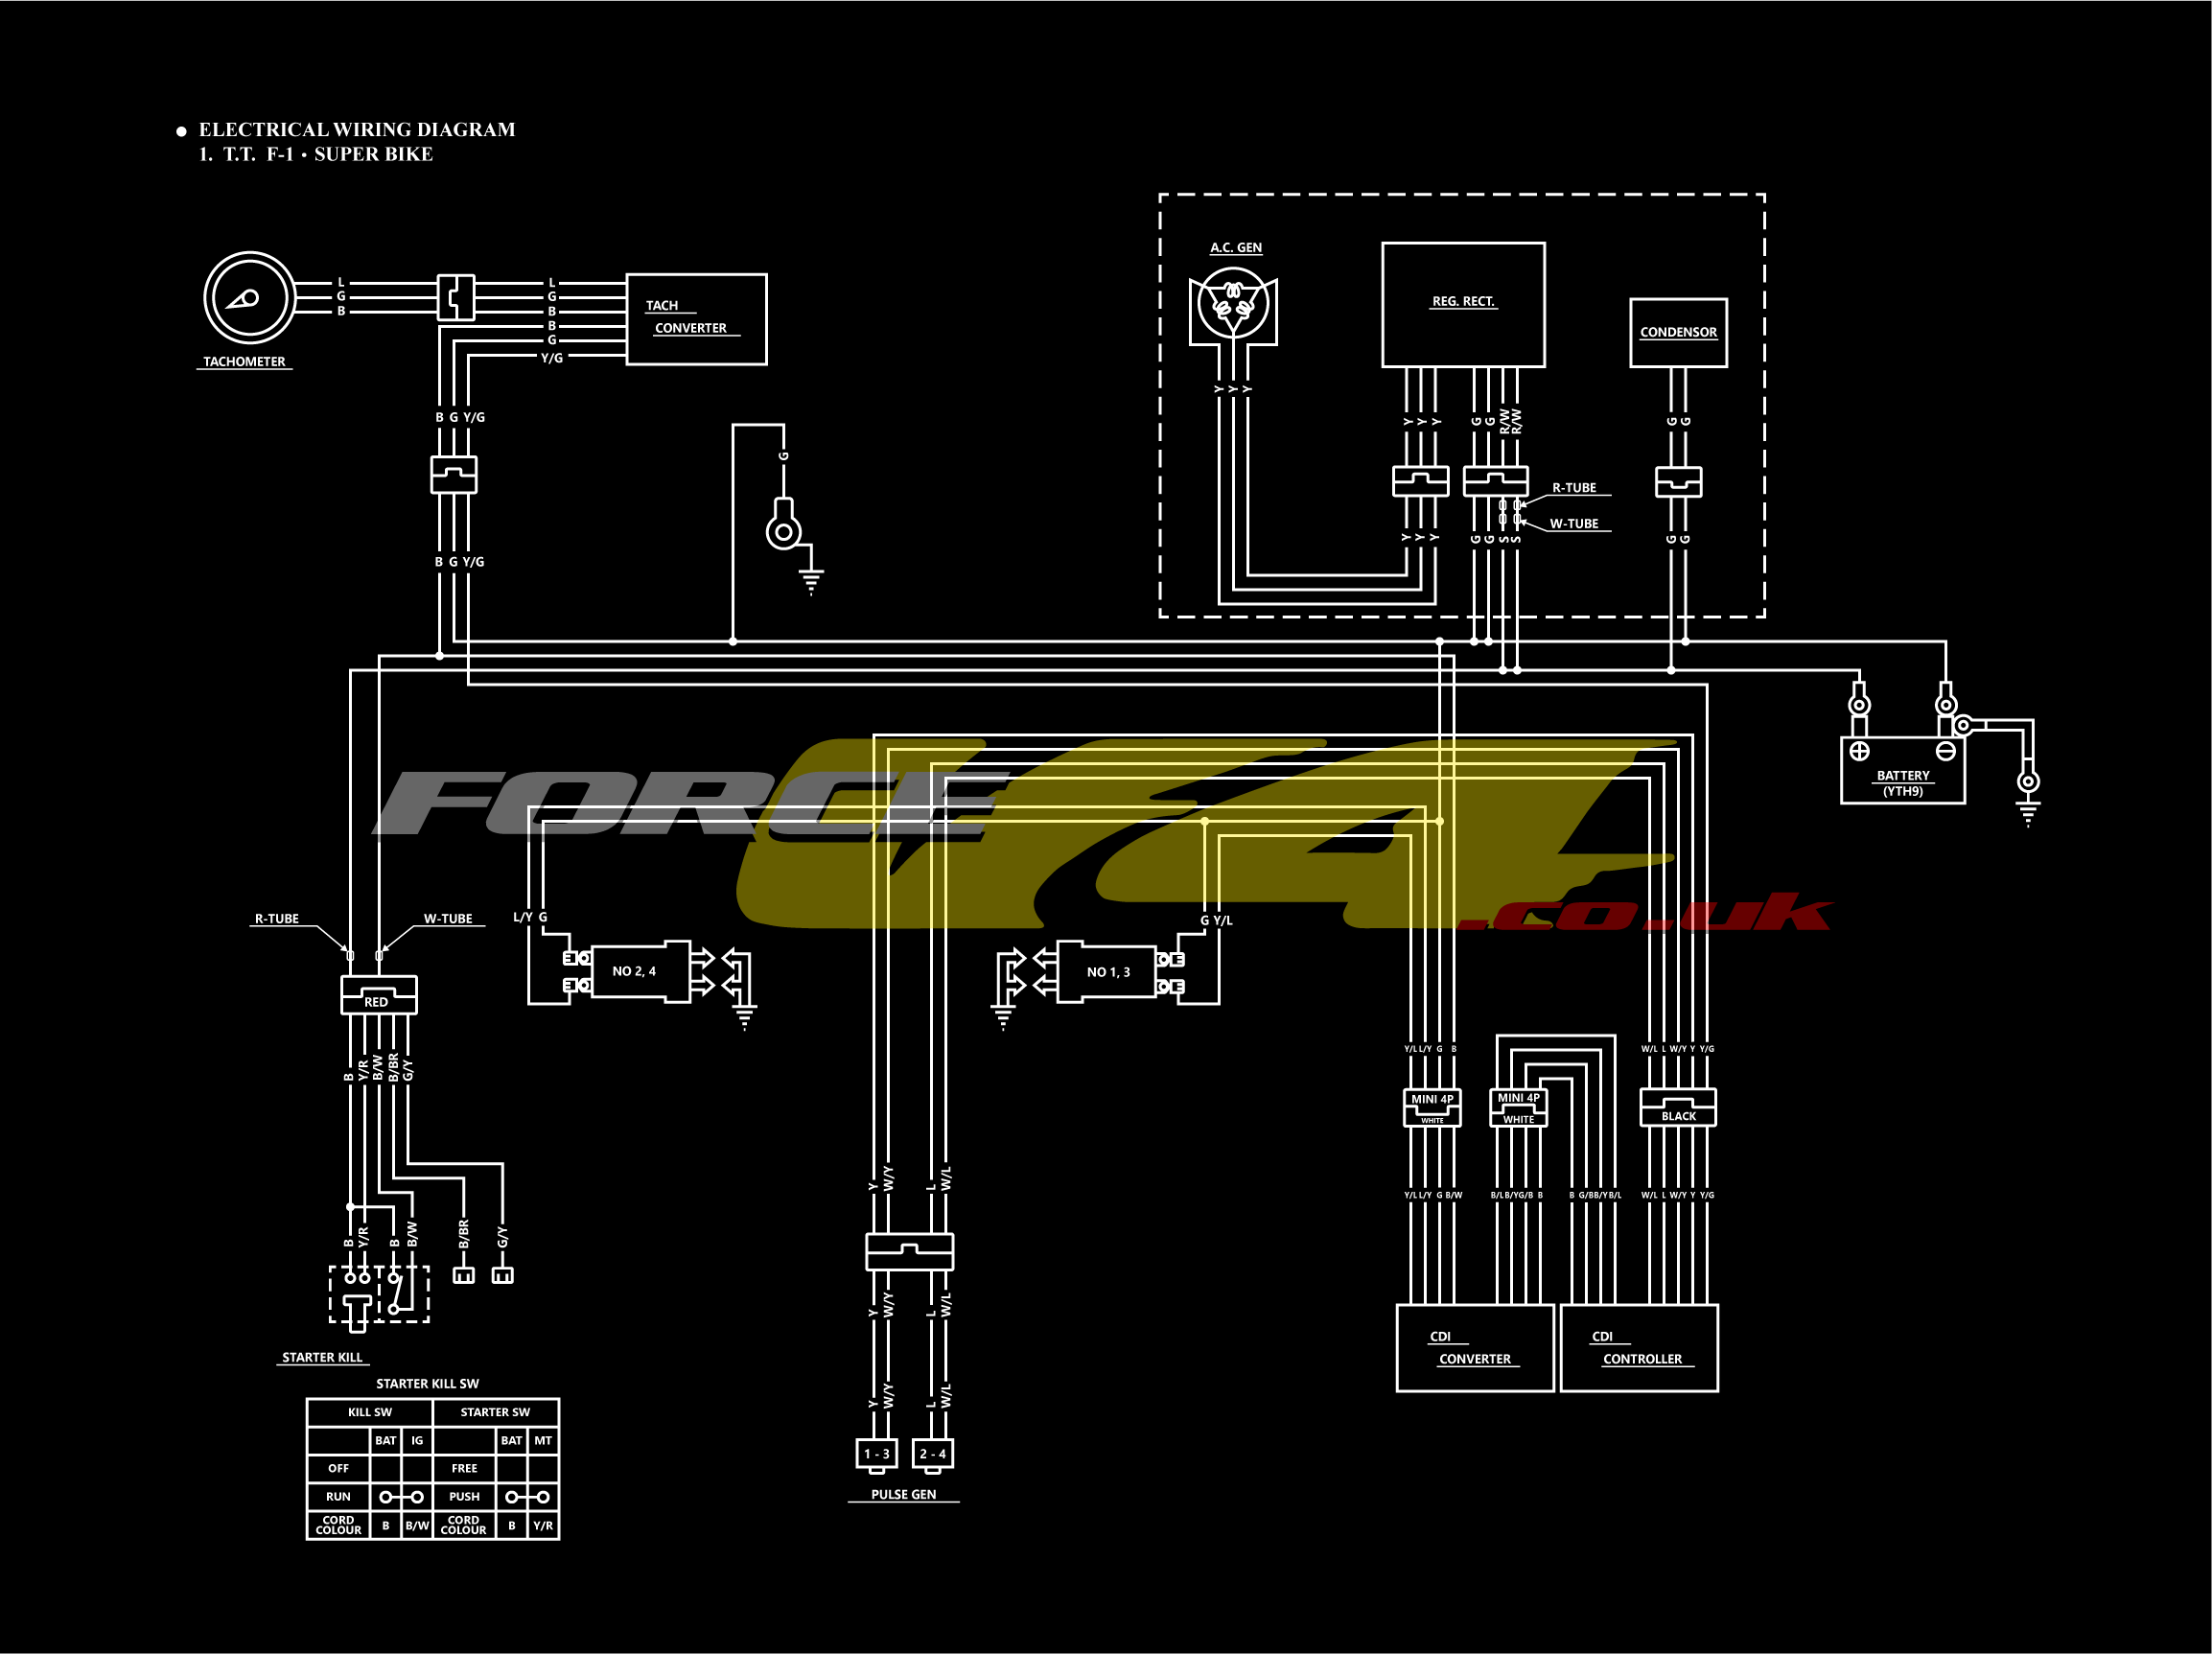 DIAGRAM] Honda Rc30 Wiring Diagram FULL Version HD Quality Wiring Diagram -  SAVANNAH-GUTHRIE.AZIENDAAGRICOLACONIO.ITAz. Agr. Conio